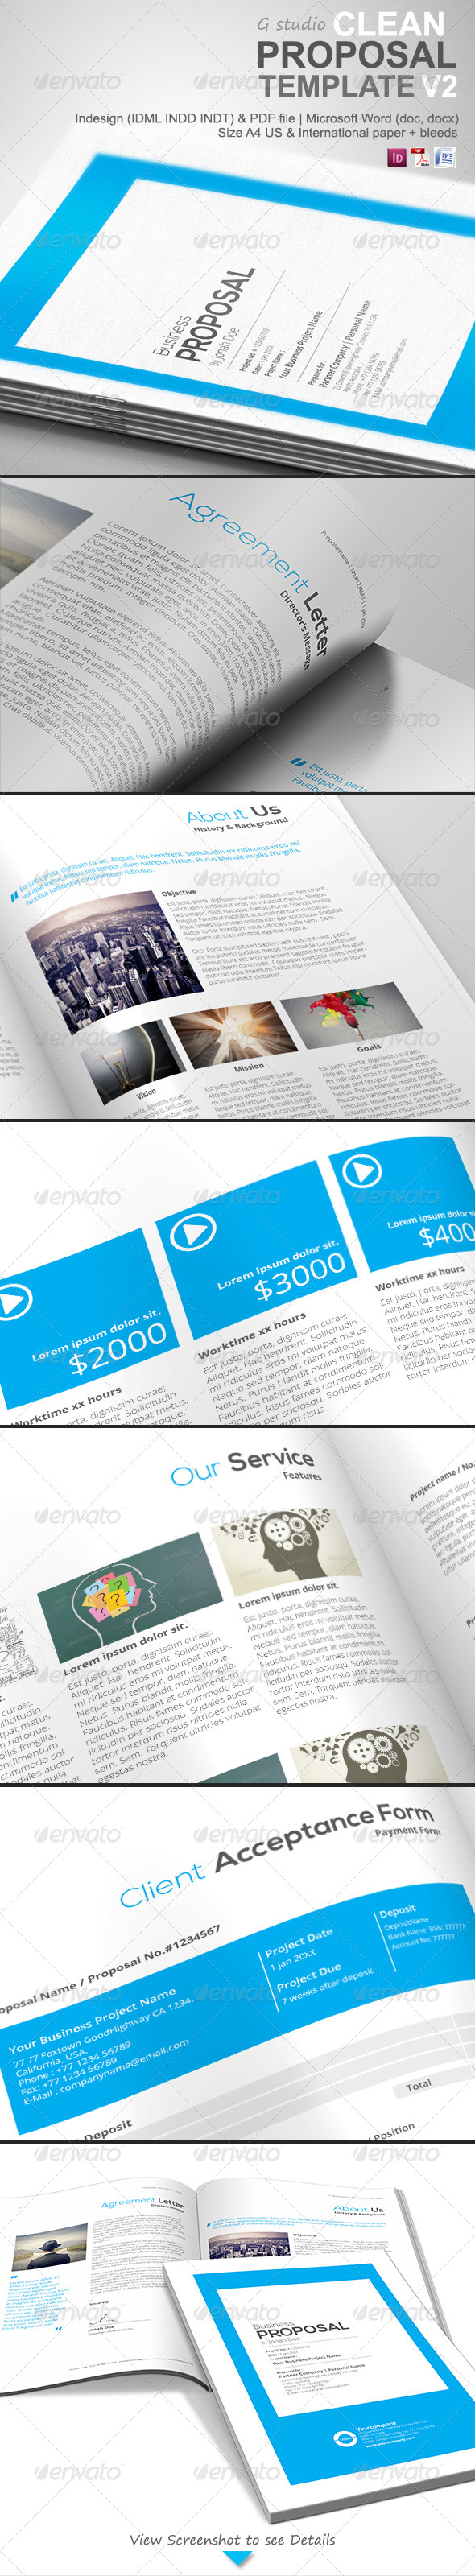 GraphicRiver Gstudio Clean Proposal Template V2 4748863